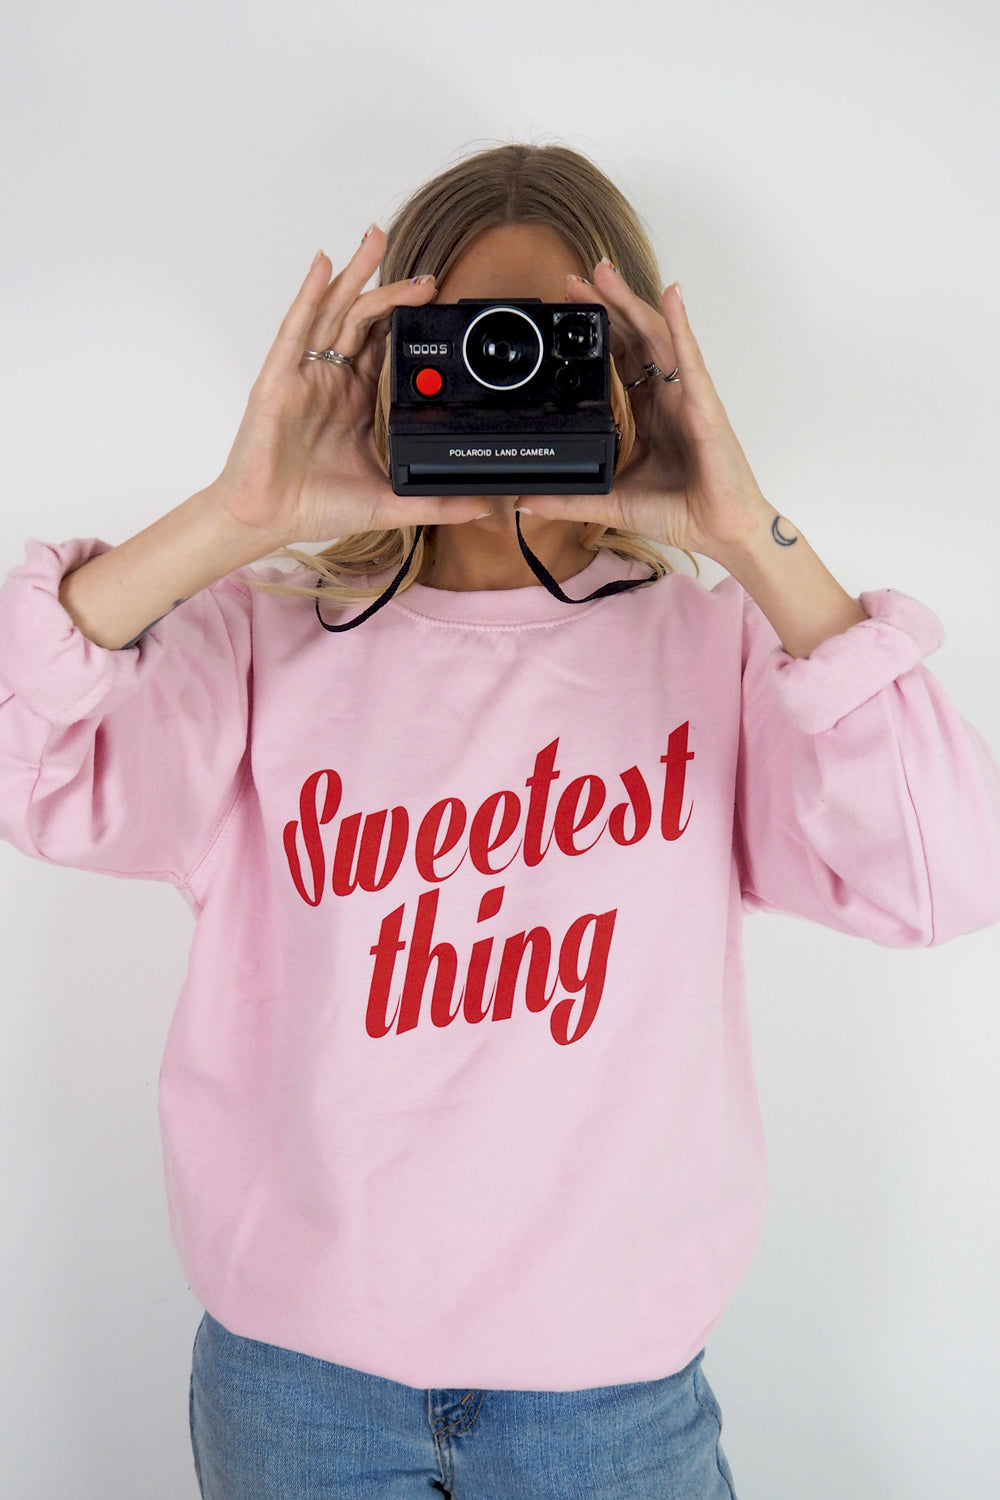 Sweetest thing retro slogan sweatshirt